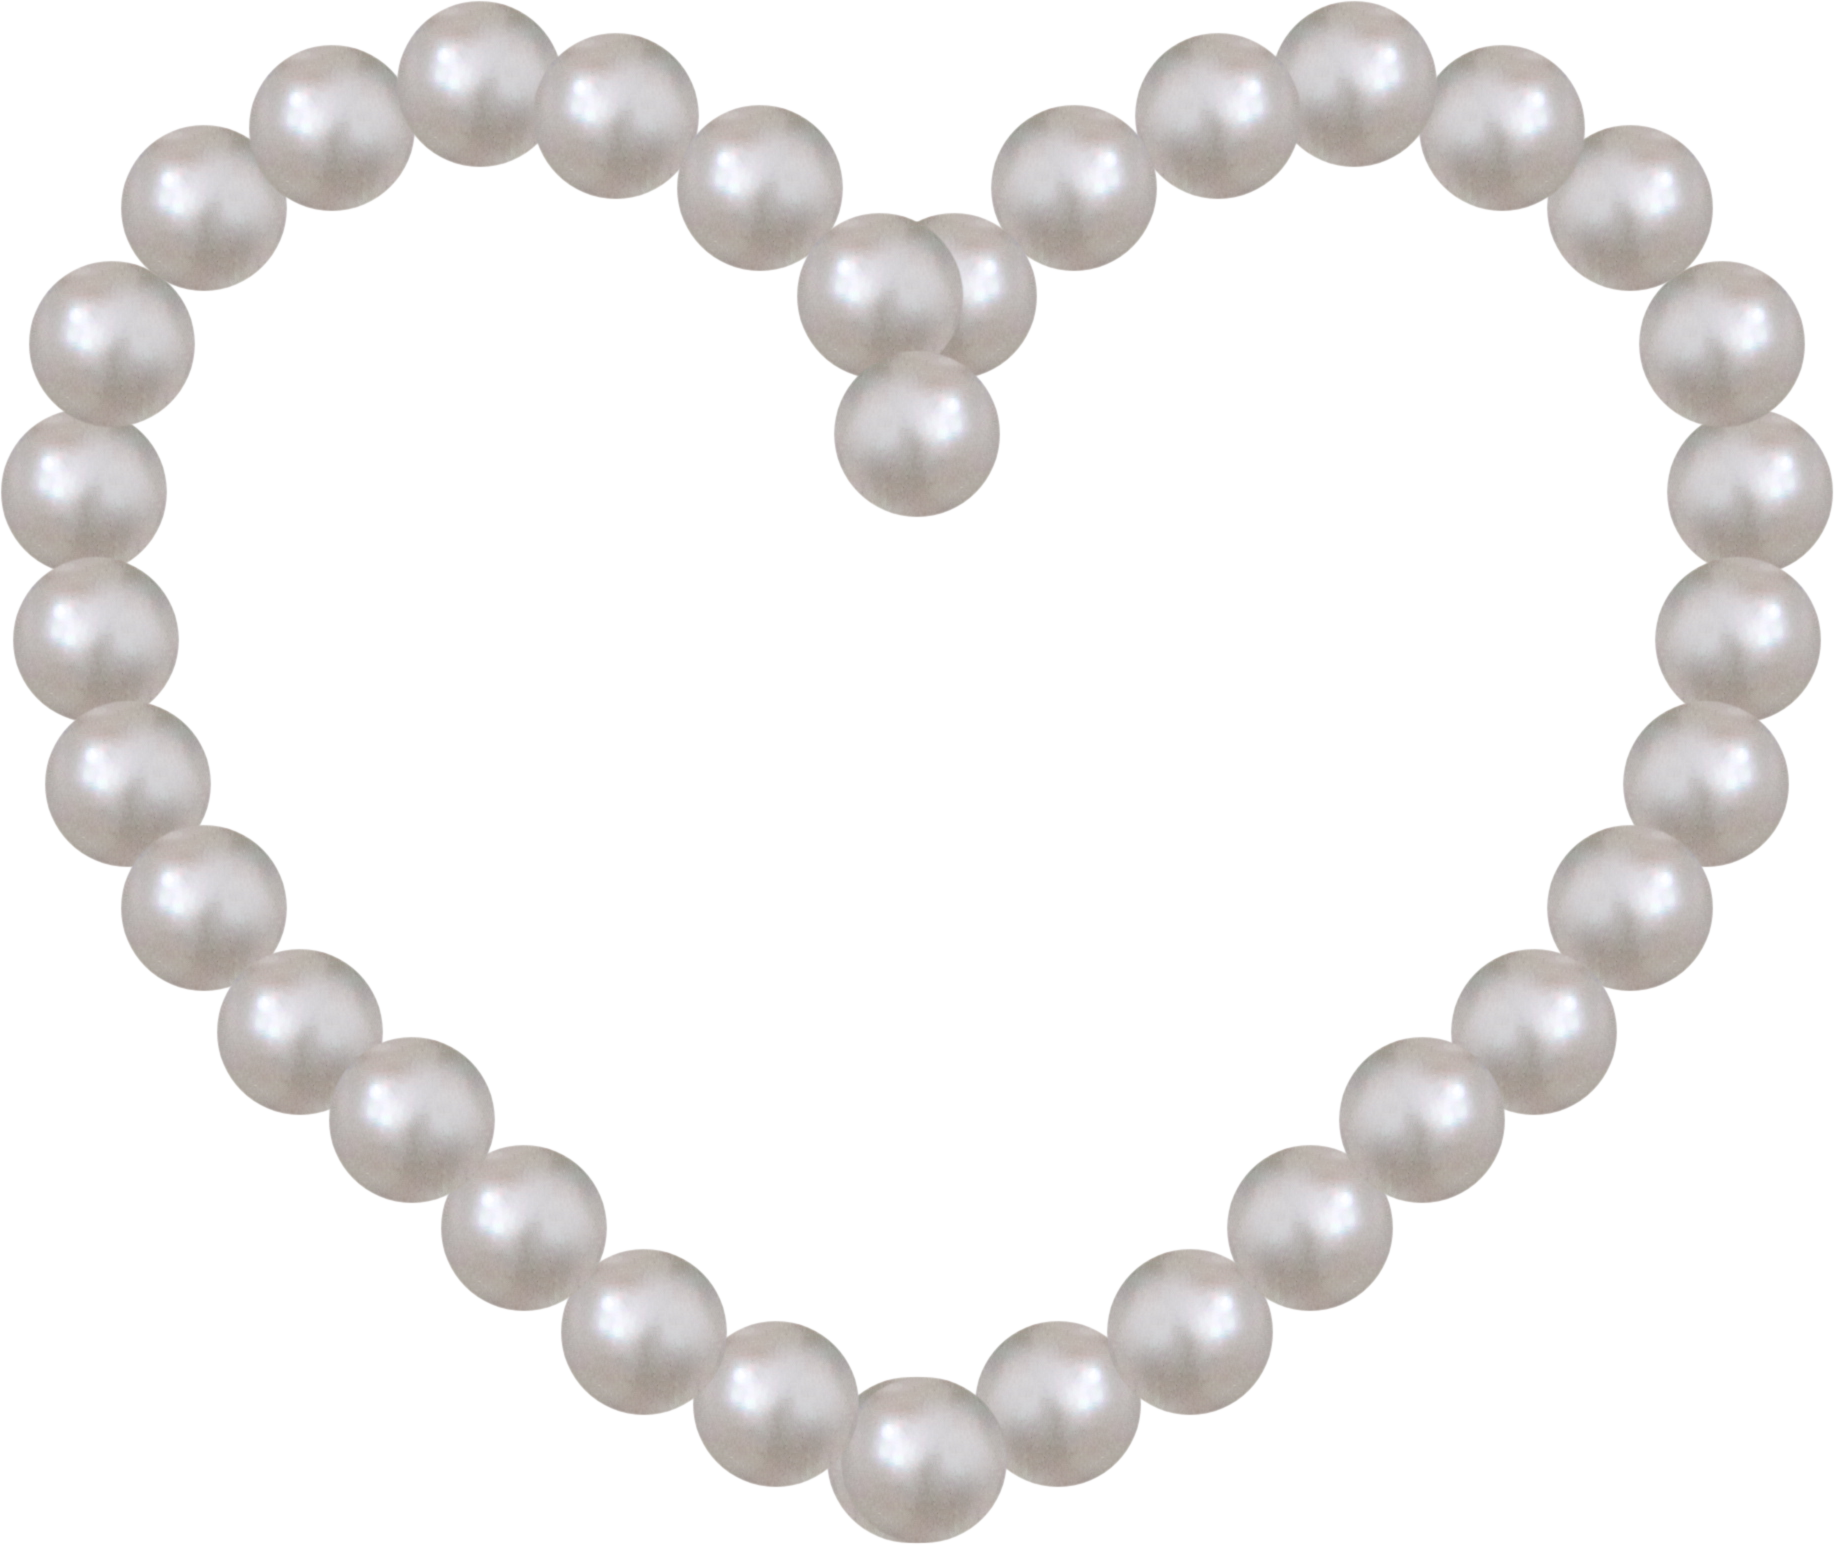 Bead, Earring, Necklace, Jewelry, Pictures 3424